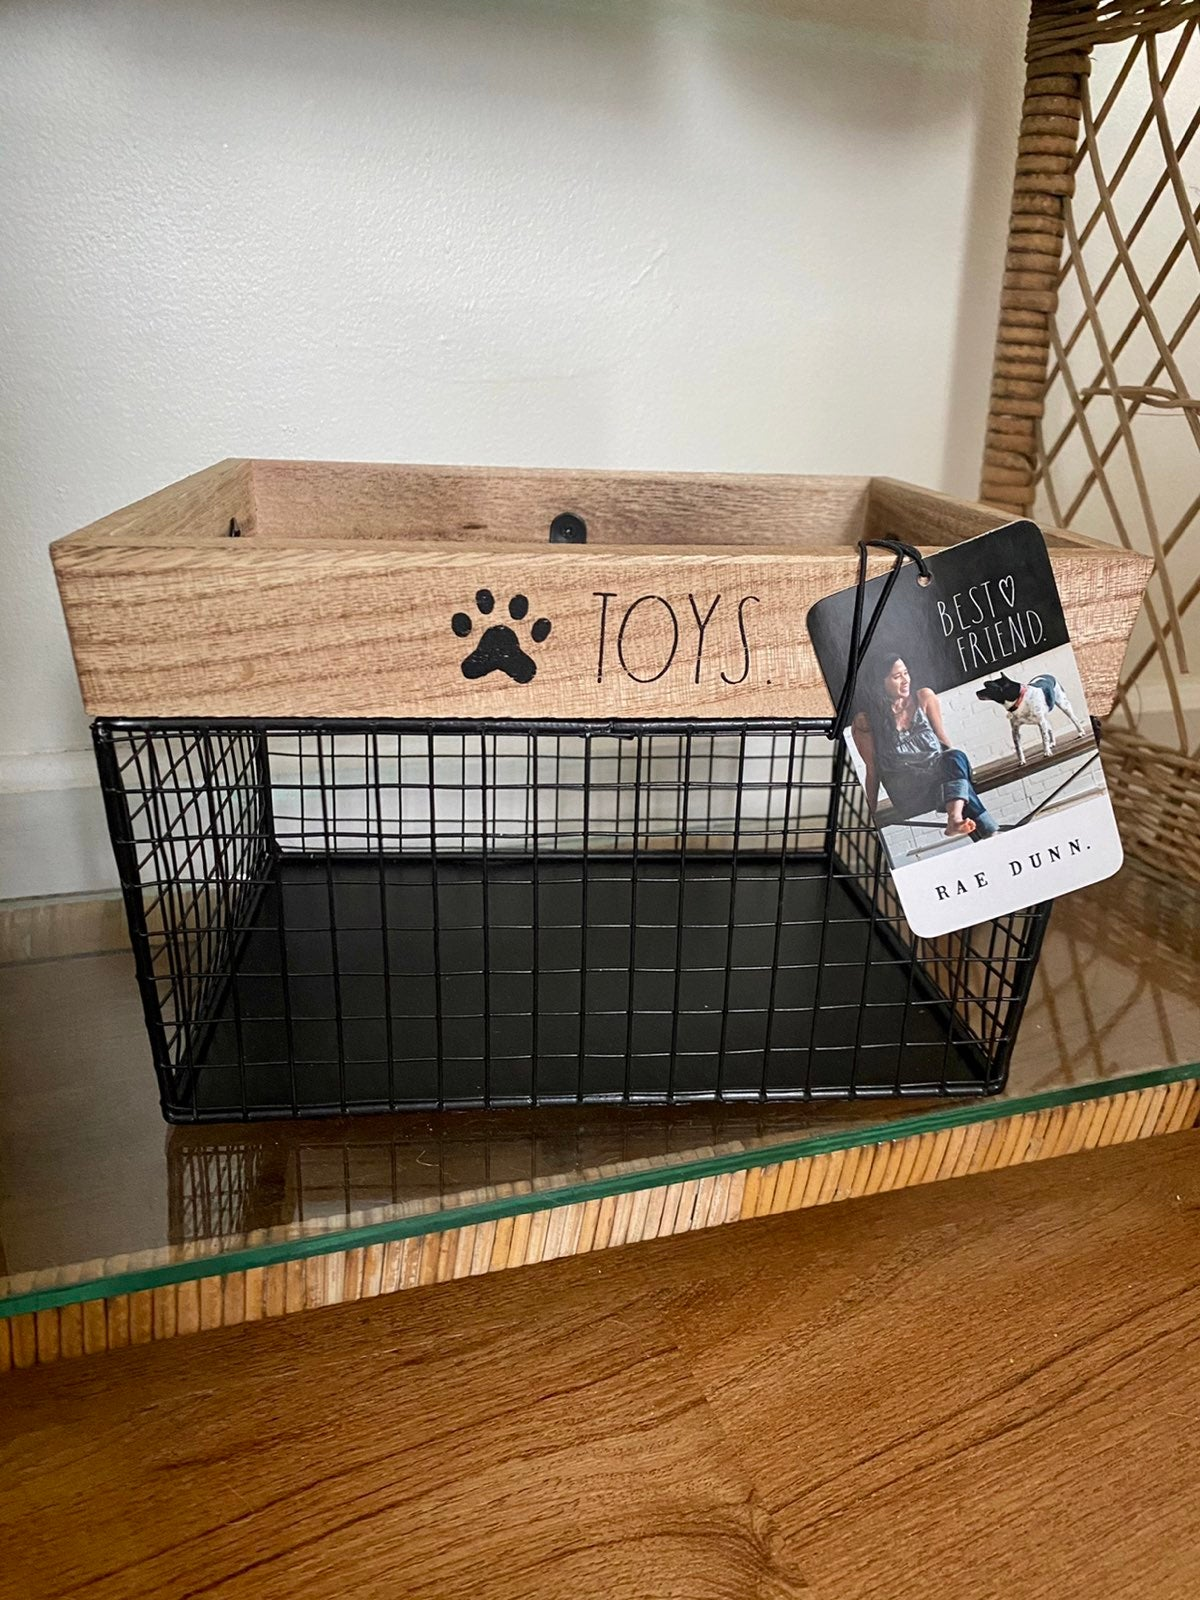 Rae Dunn TOYS. Wire Dog Basket